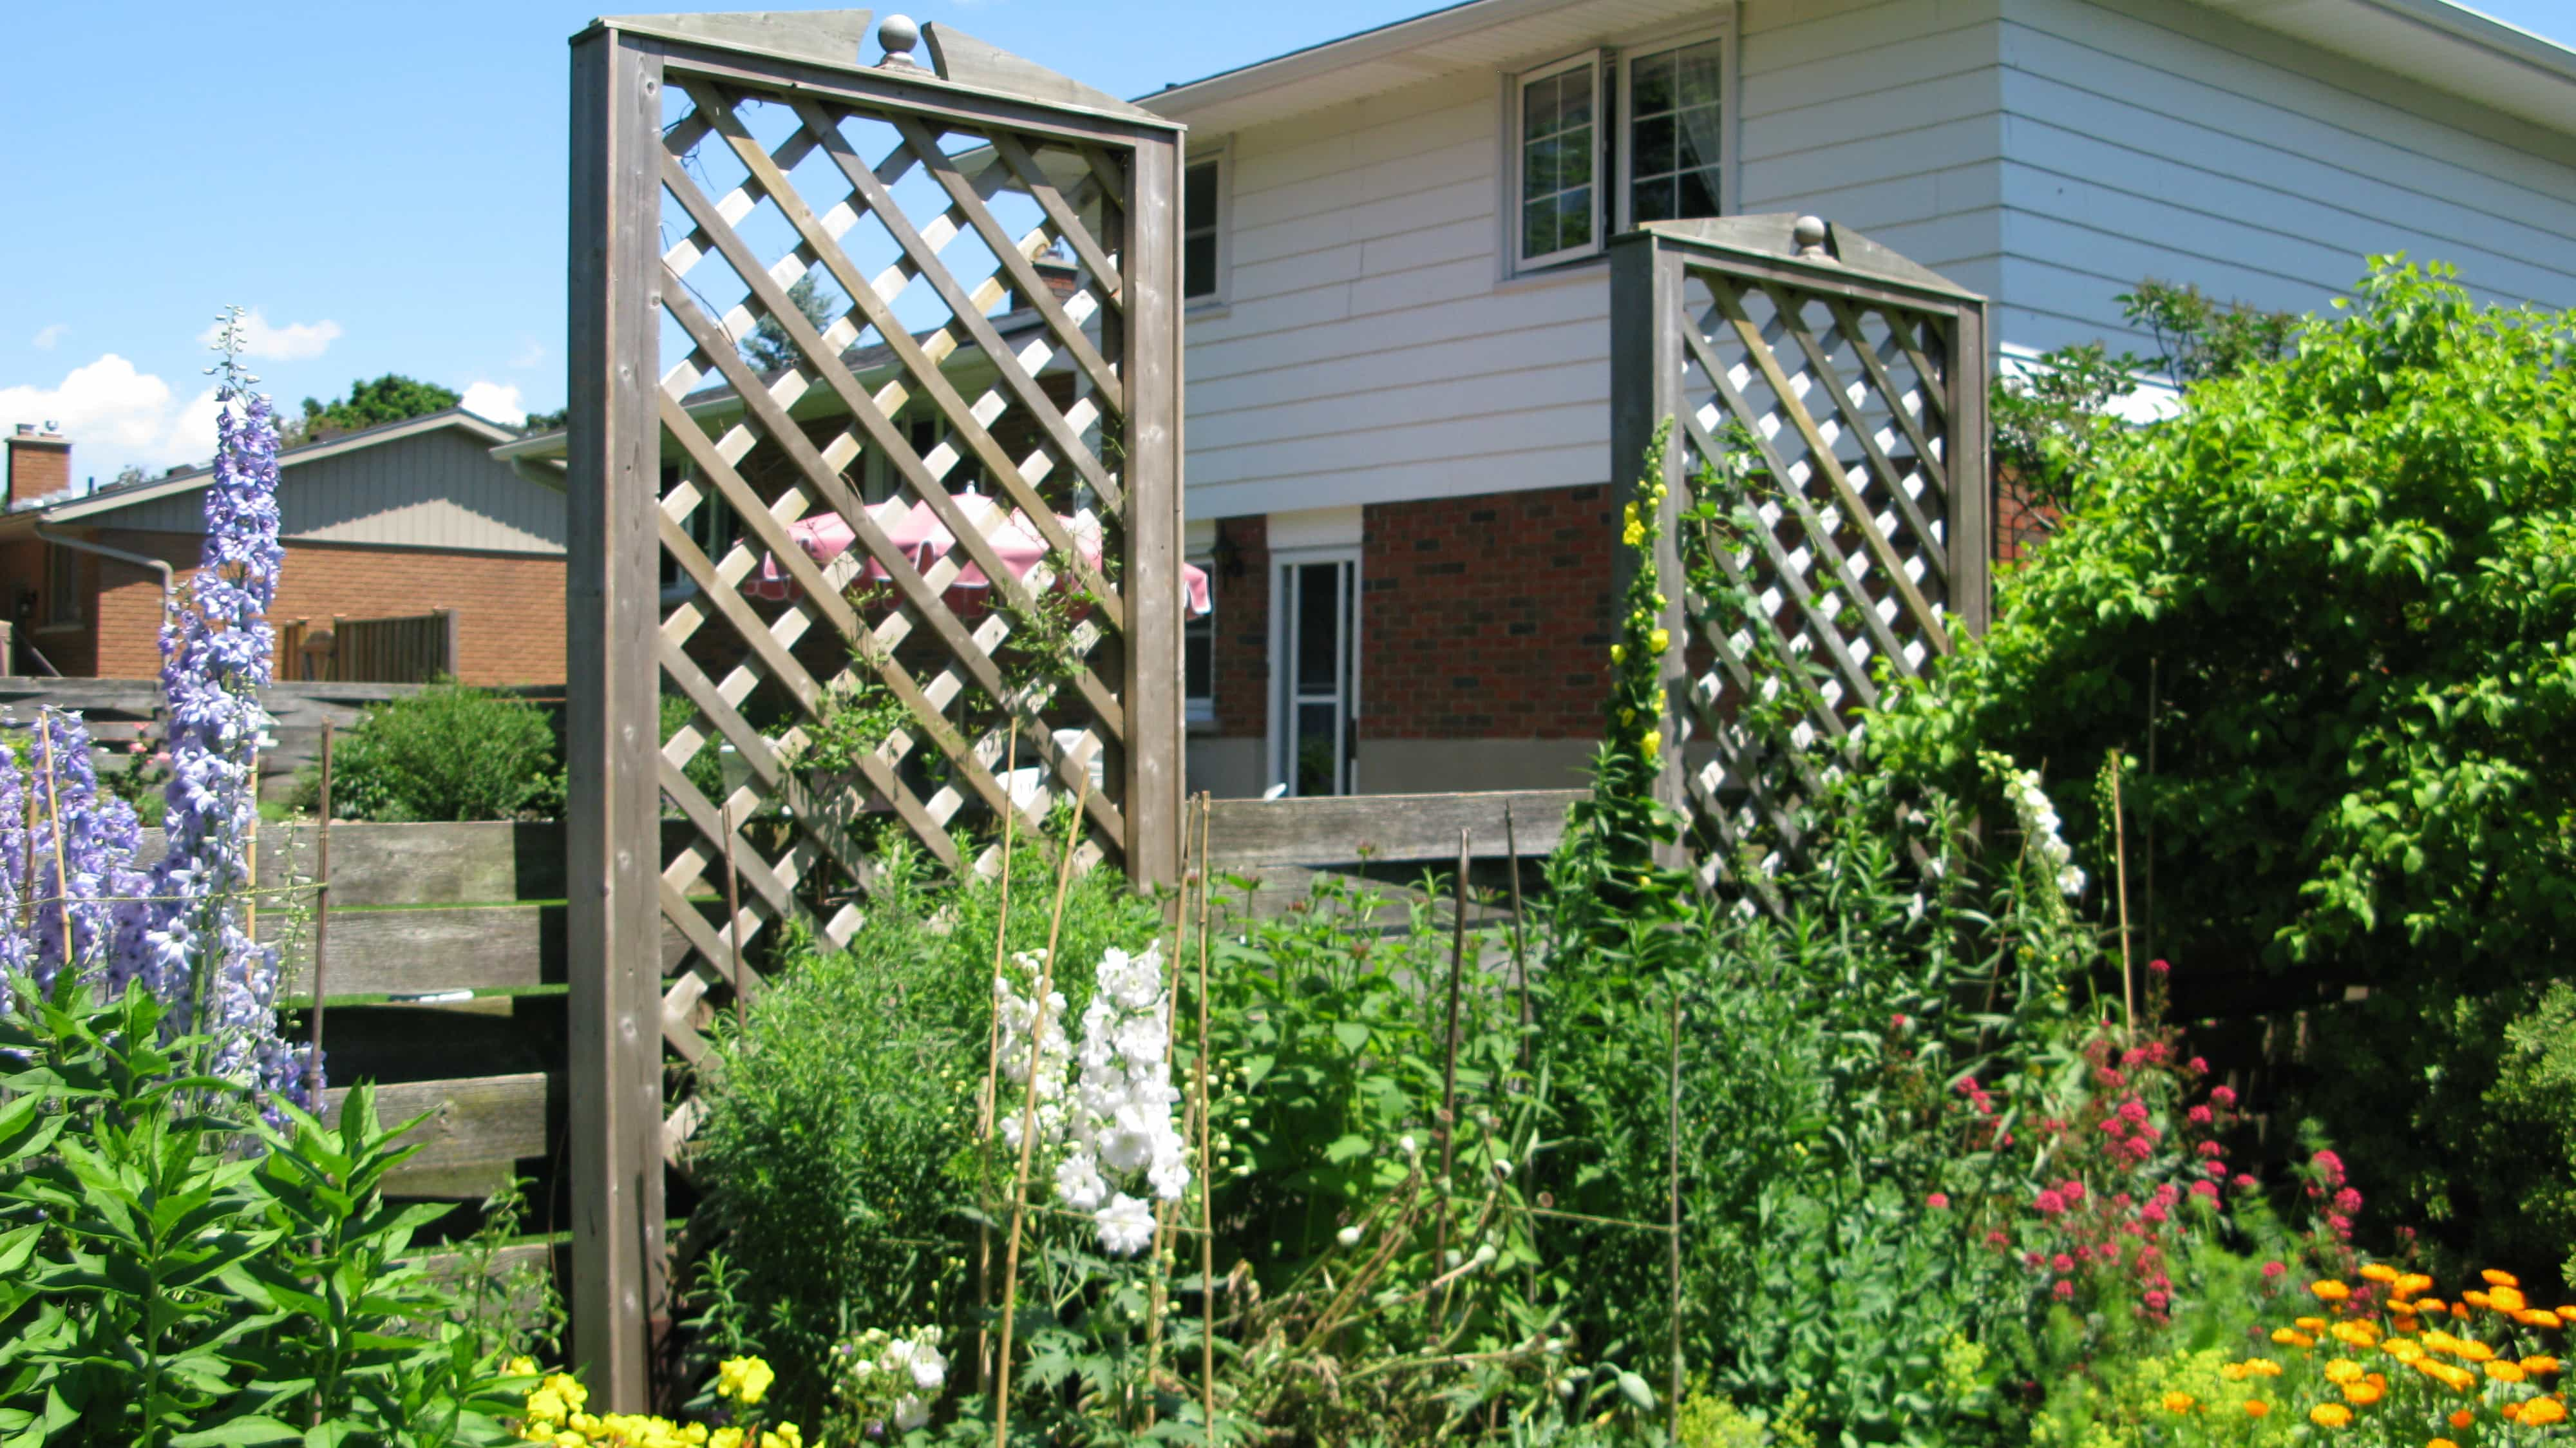 How to make a fence taller empress of dirt for Outdoor lattice